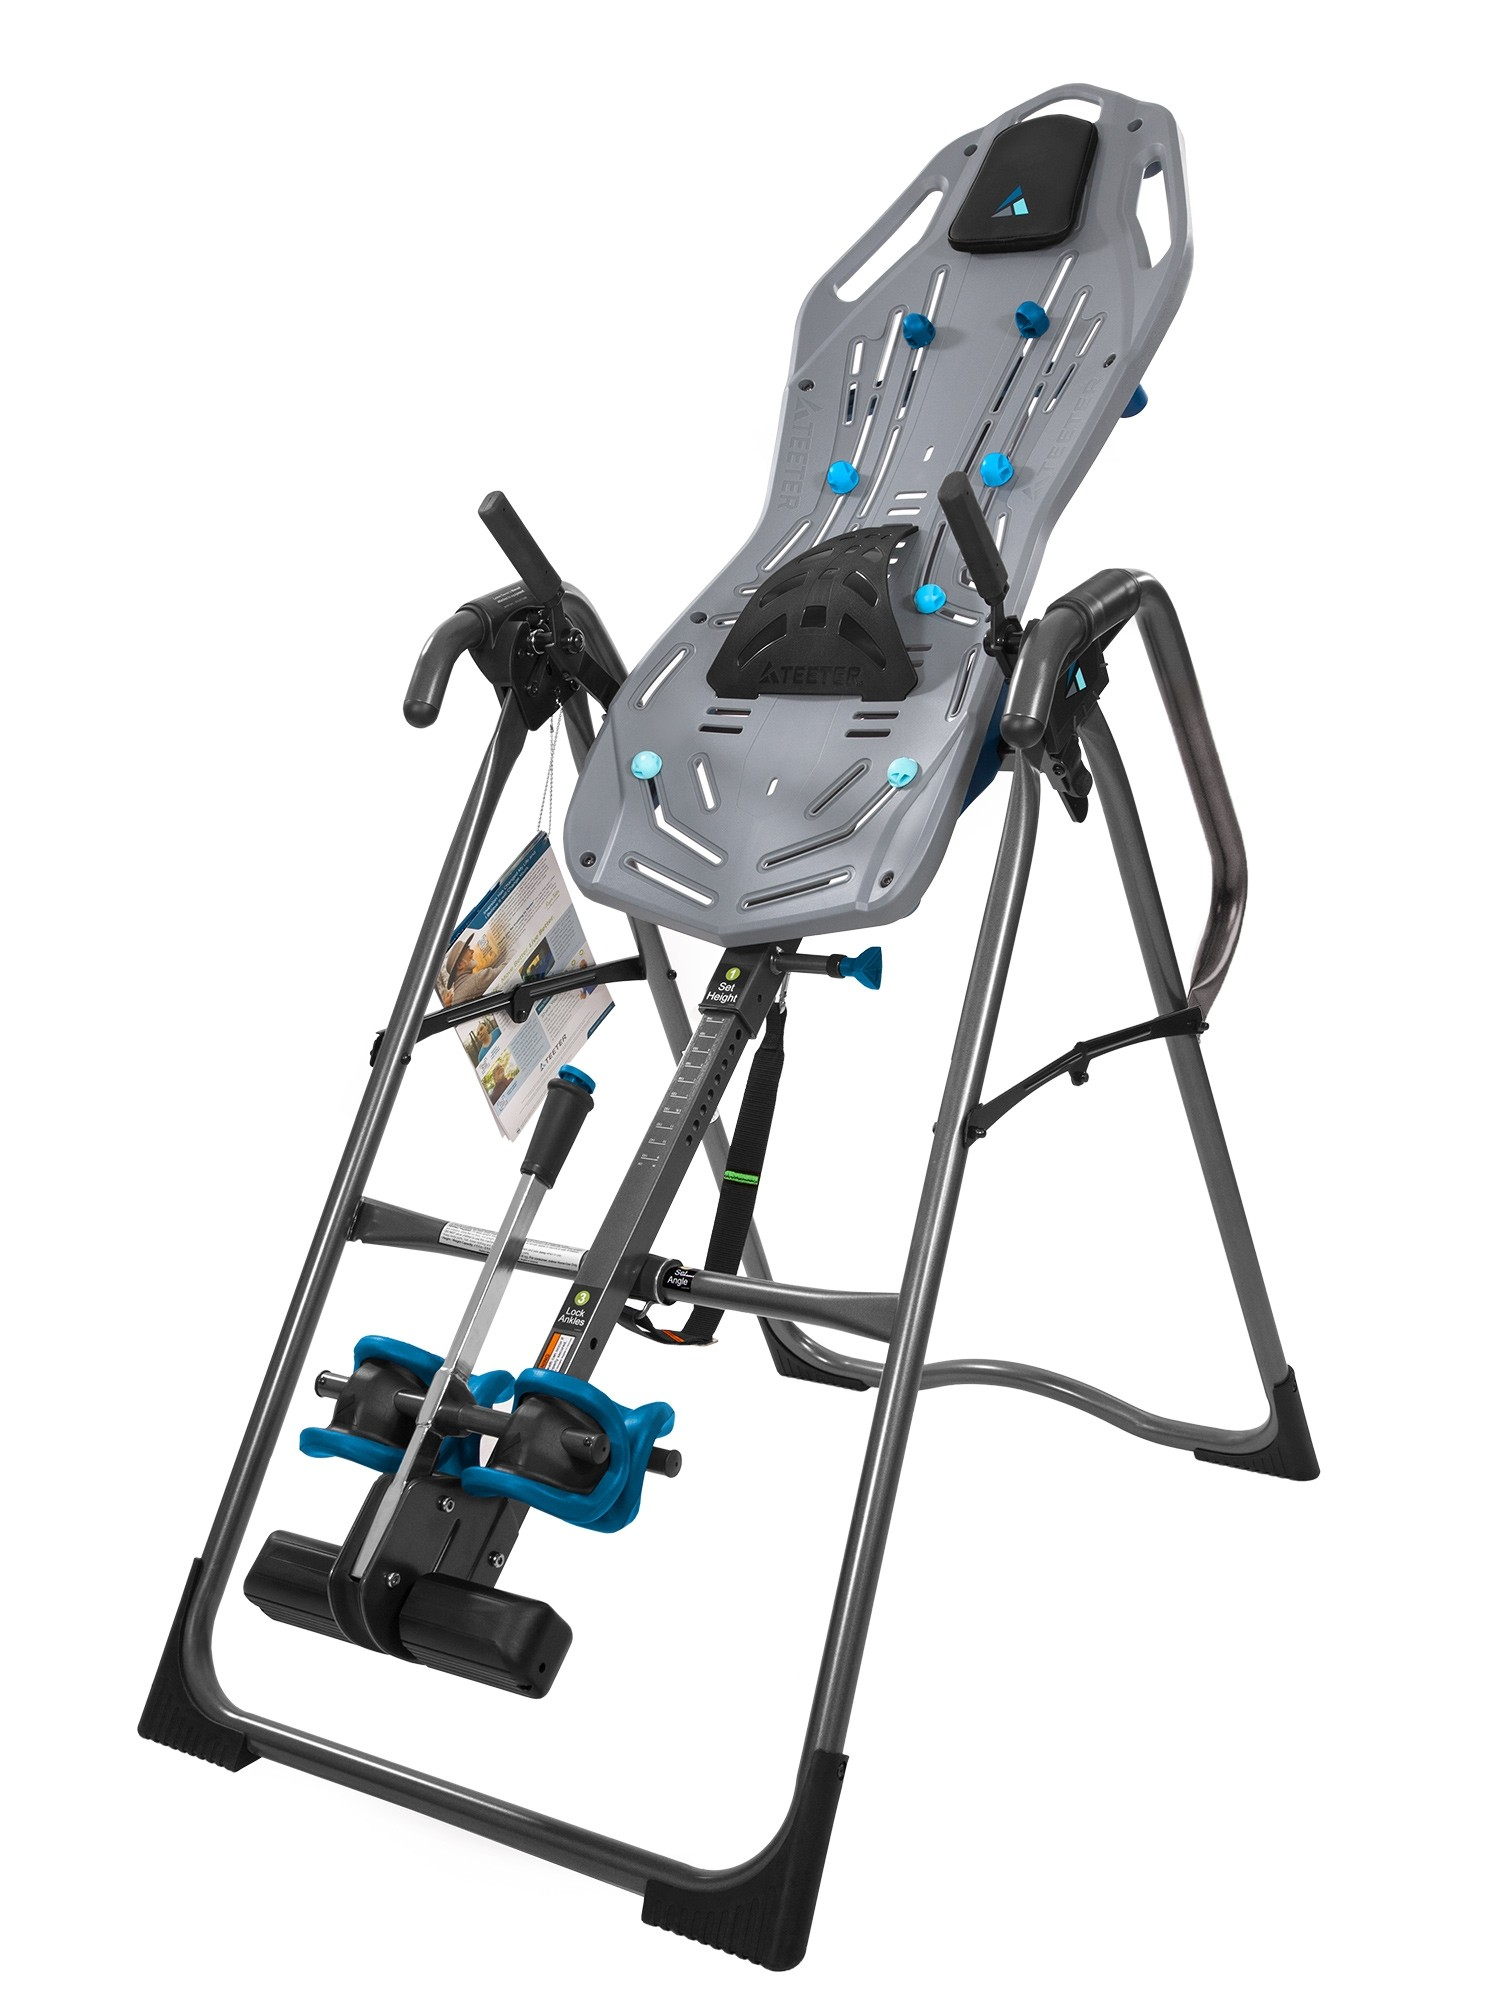 Teeter Fitspine X3 Inversion Table - Pre Order for March